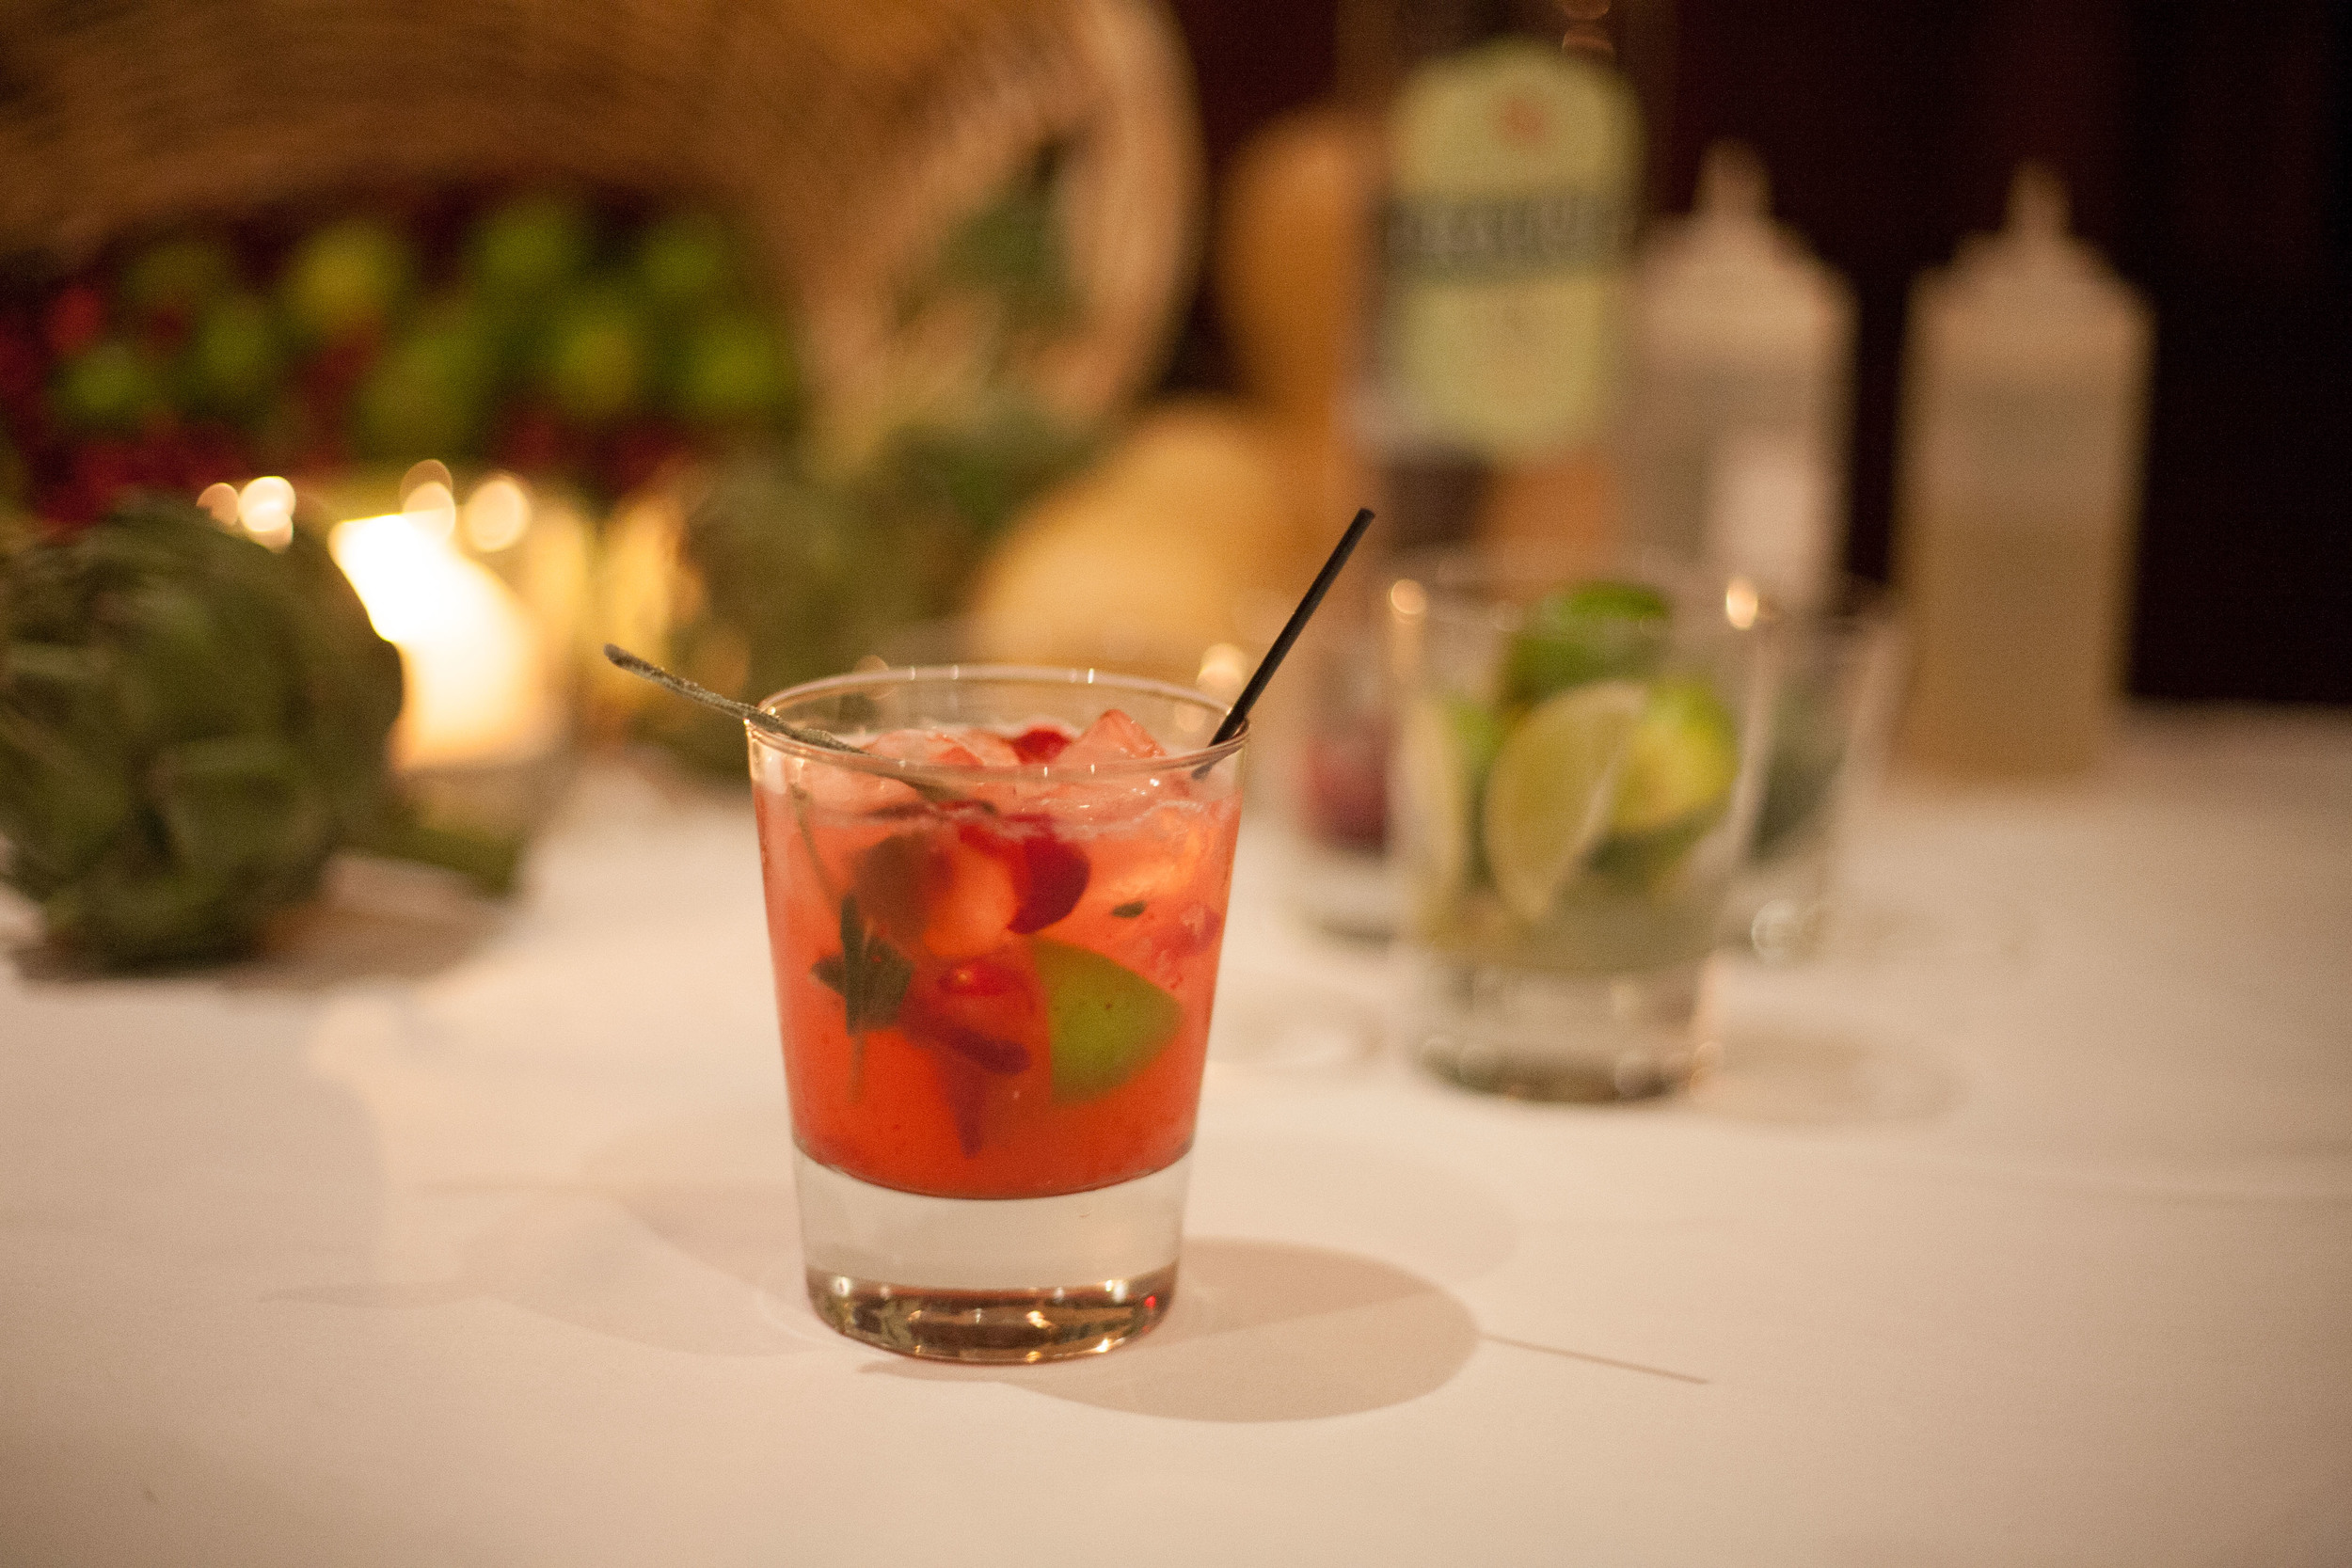 Cranberry & Sage: Prairie Organic Gin, white cranberry juice, fresh cranberries, lime & candied sage leaf.